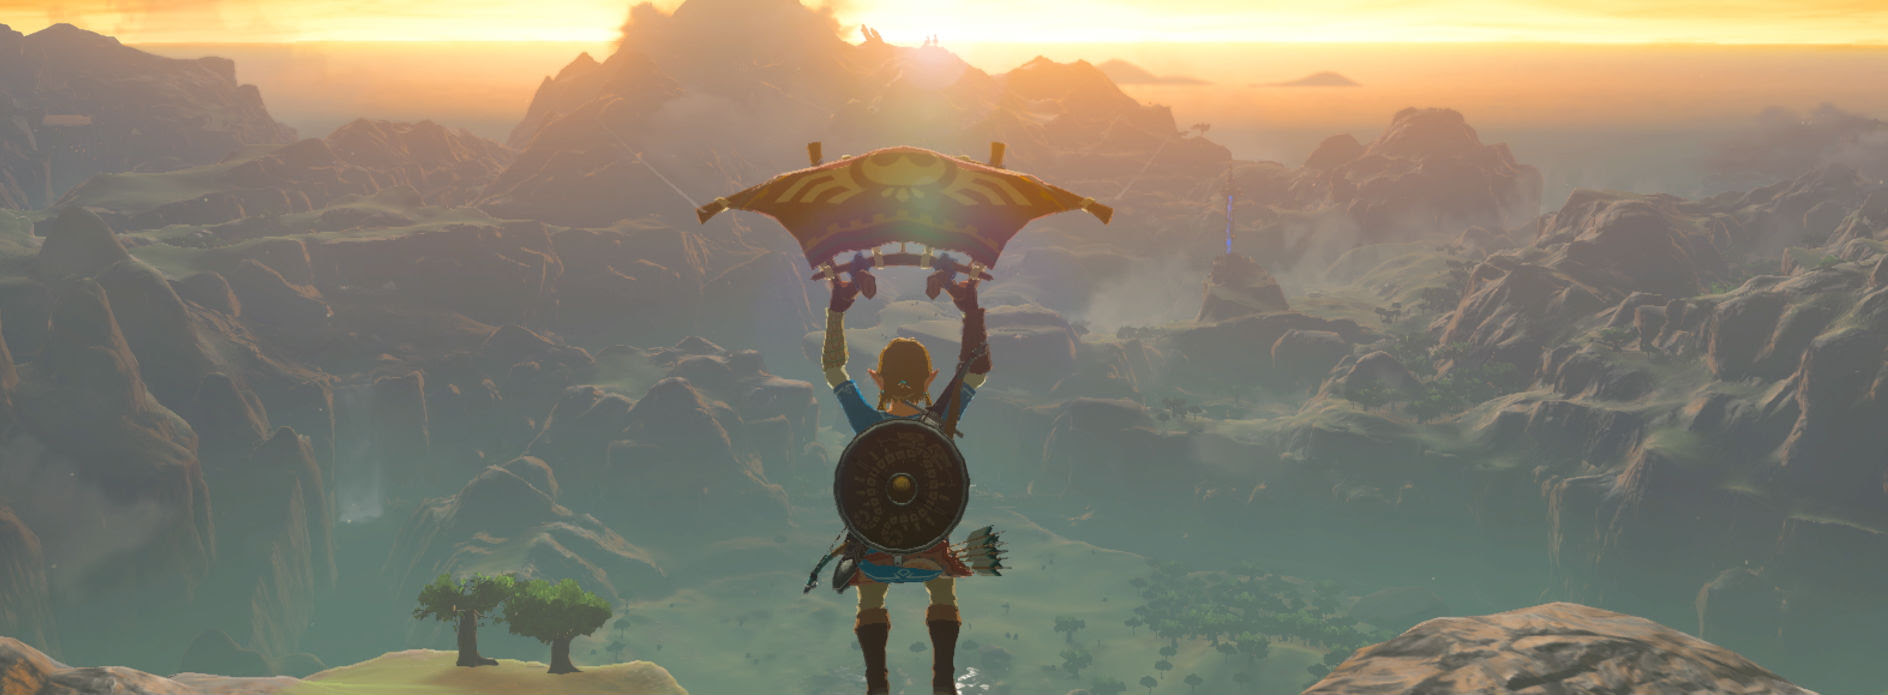 New Zelda: Breath of the Wild patch lets you earn items by using Switch news channels screenshot